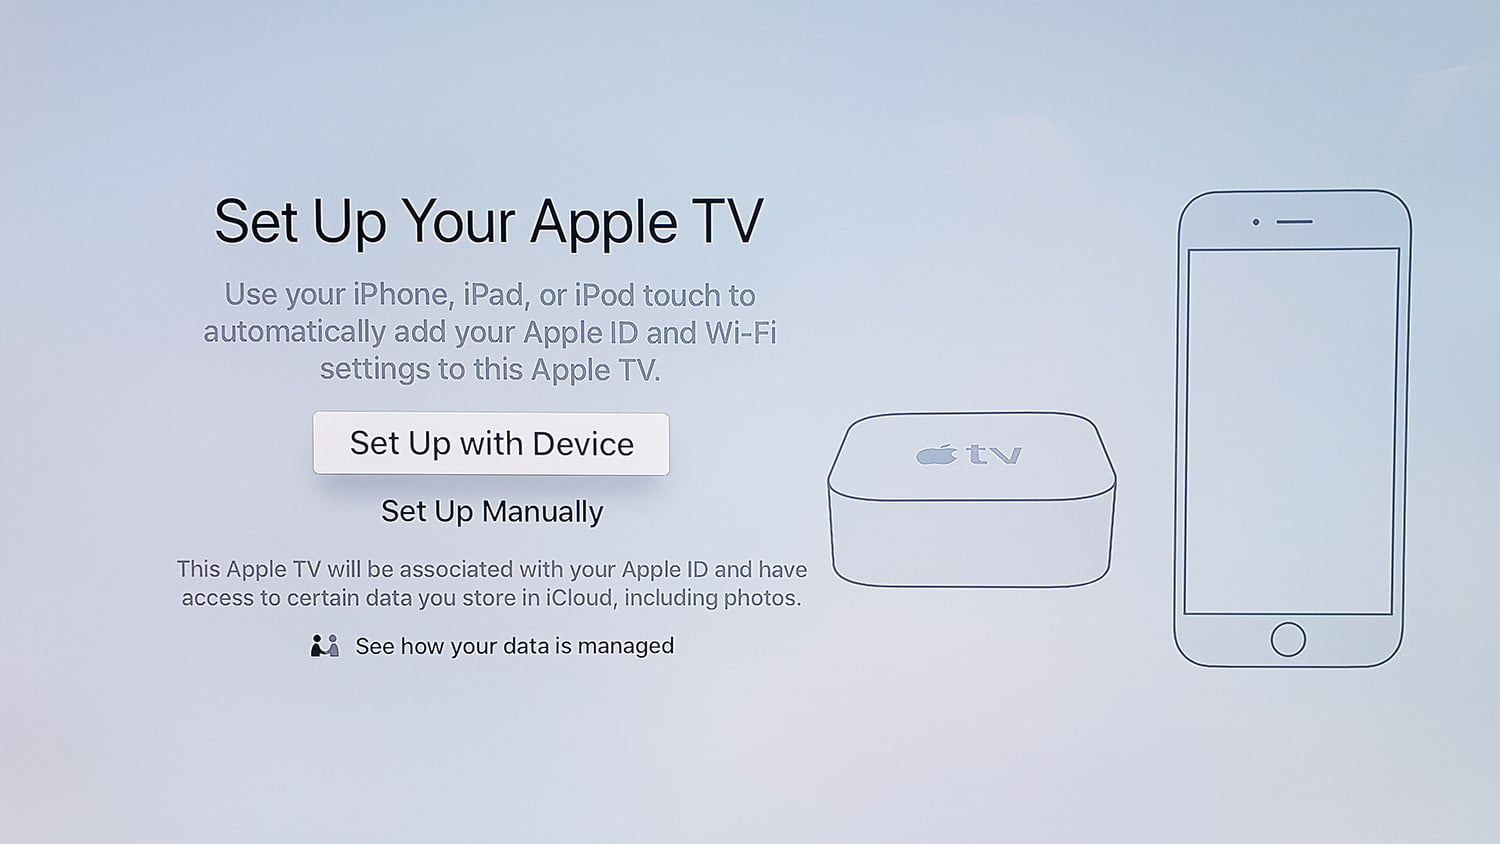 how to set up an apple tv and apple tv 4k digital trends Apple TV Grid how to set up apple tv appletvsetup screen 1